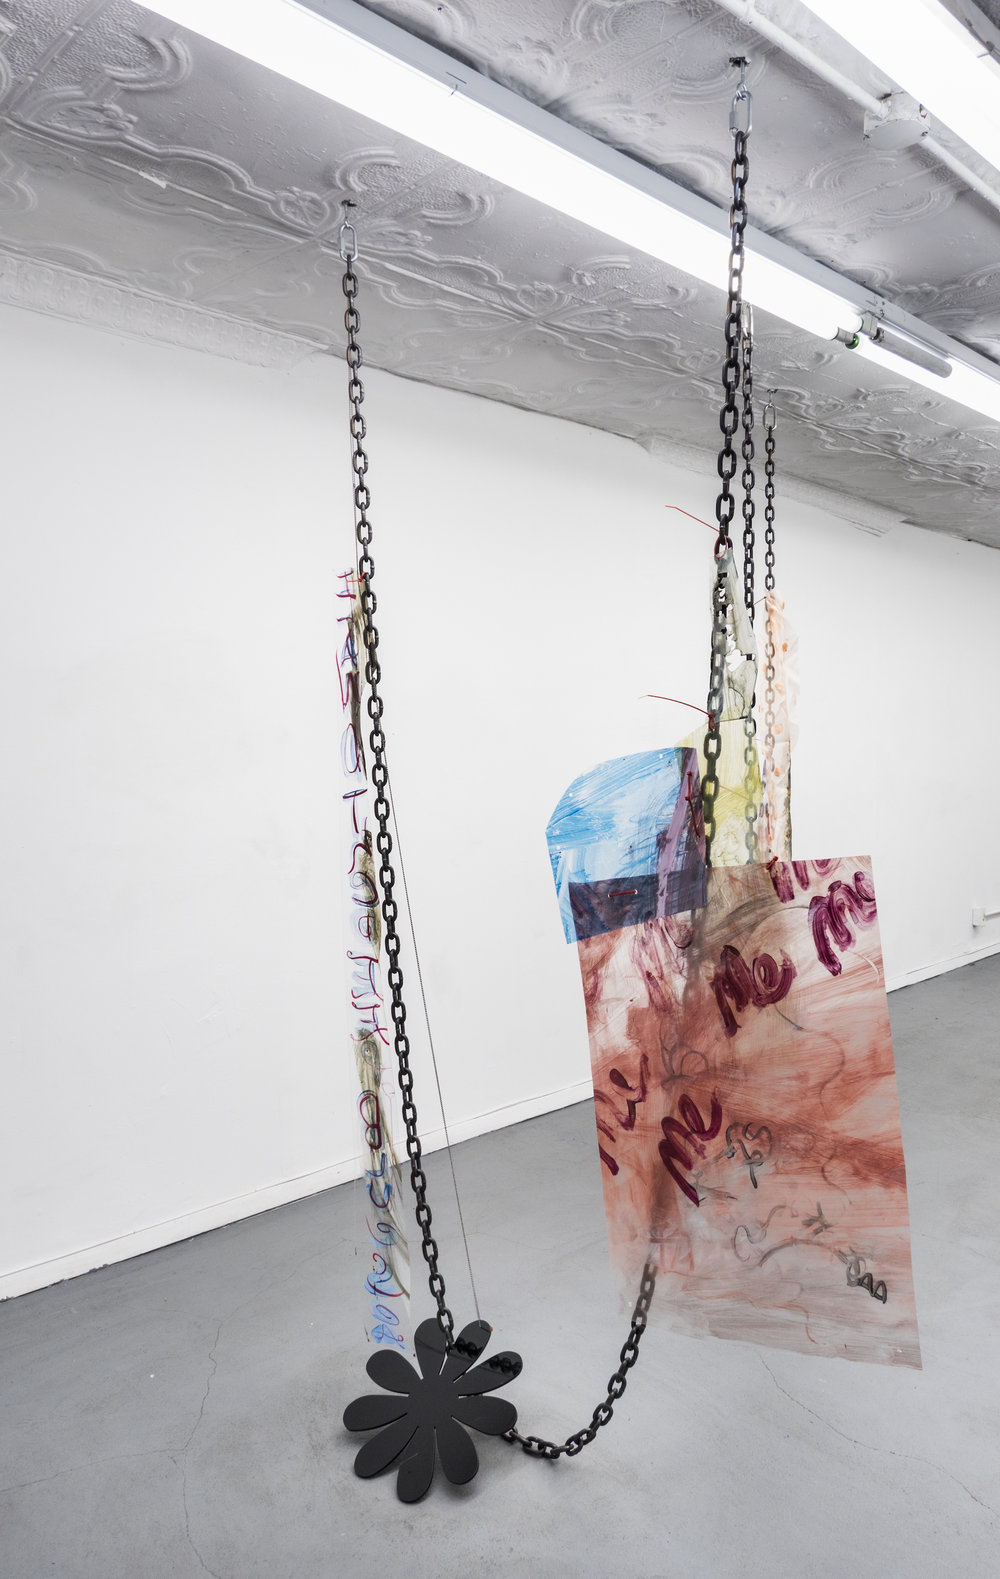 Raque Ford,  DaisyME,  2017, Acrylic paint on polypropelene, steel chain, ball chain, zip ties and acrylic, 86 x 32 in